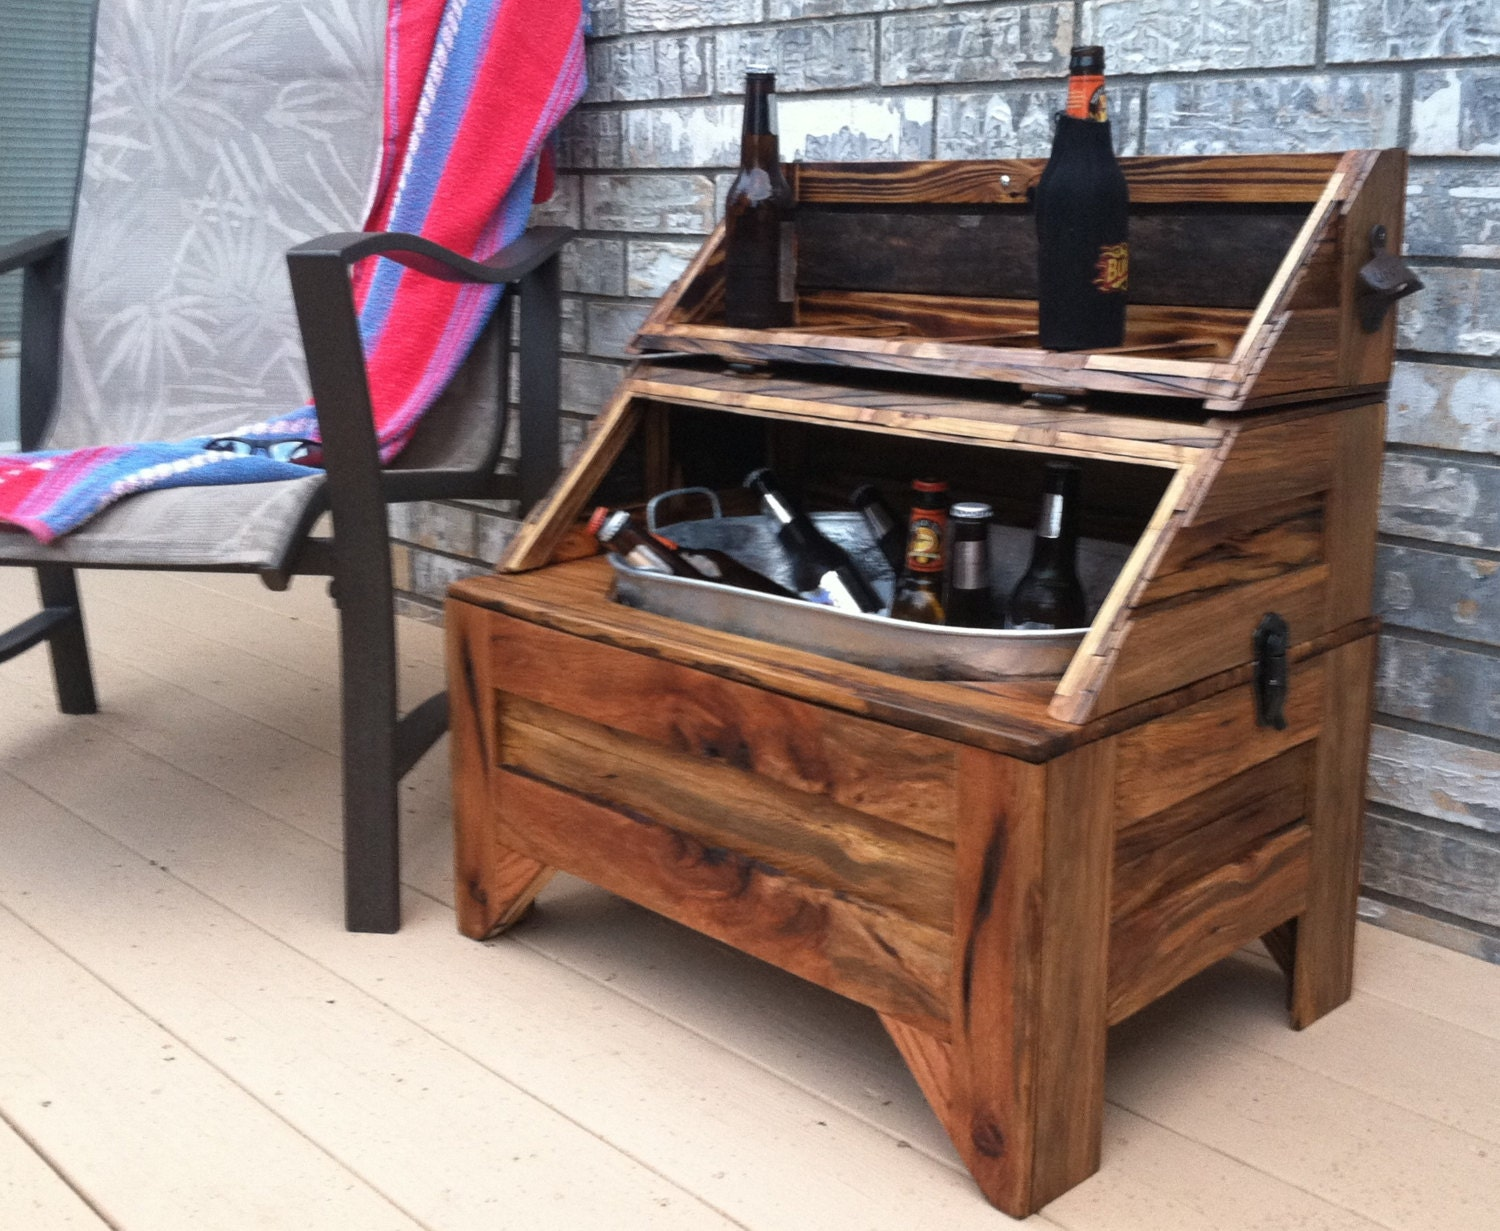 WashTub Beer Cooler-Horizontal - Oak Barn Wood, Home and Living, Patio  Furniture - MADE TO ORDER - Patio Cooler Etsy